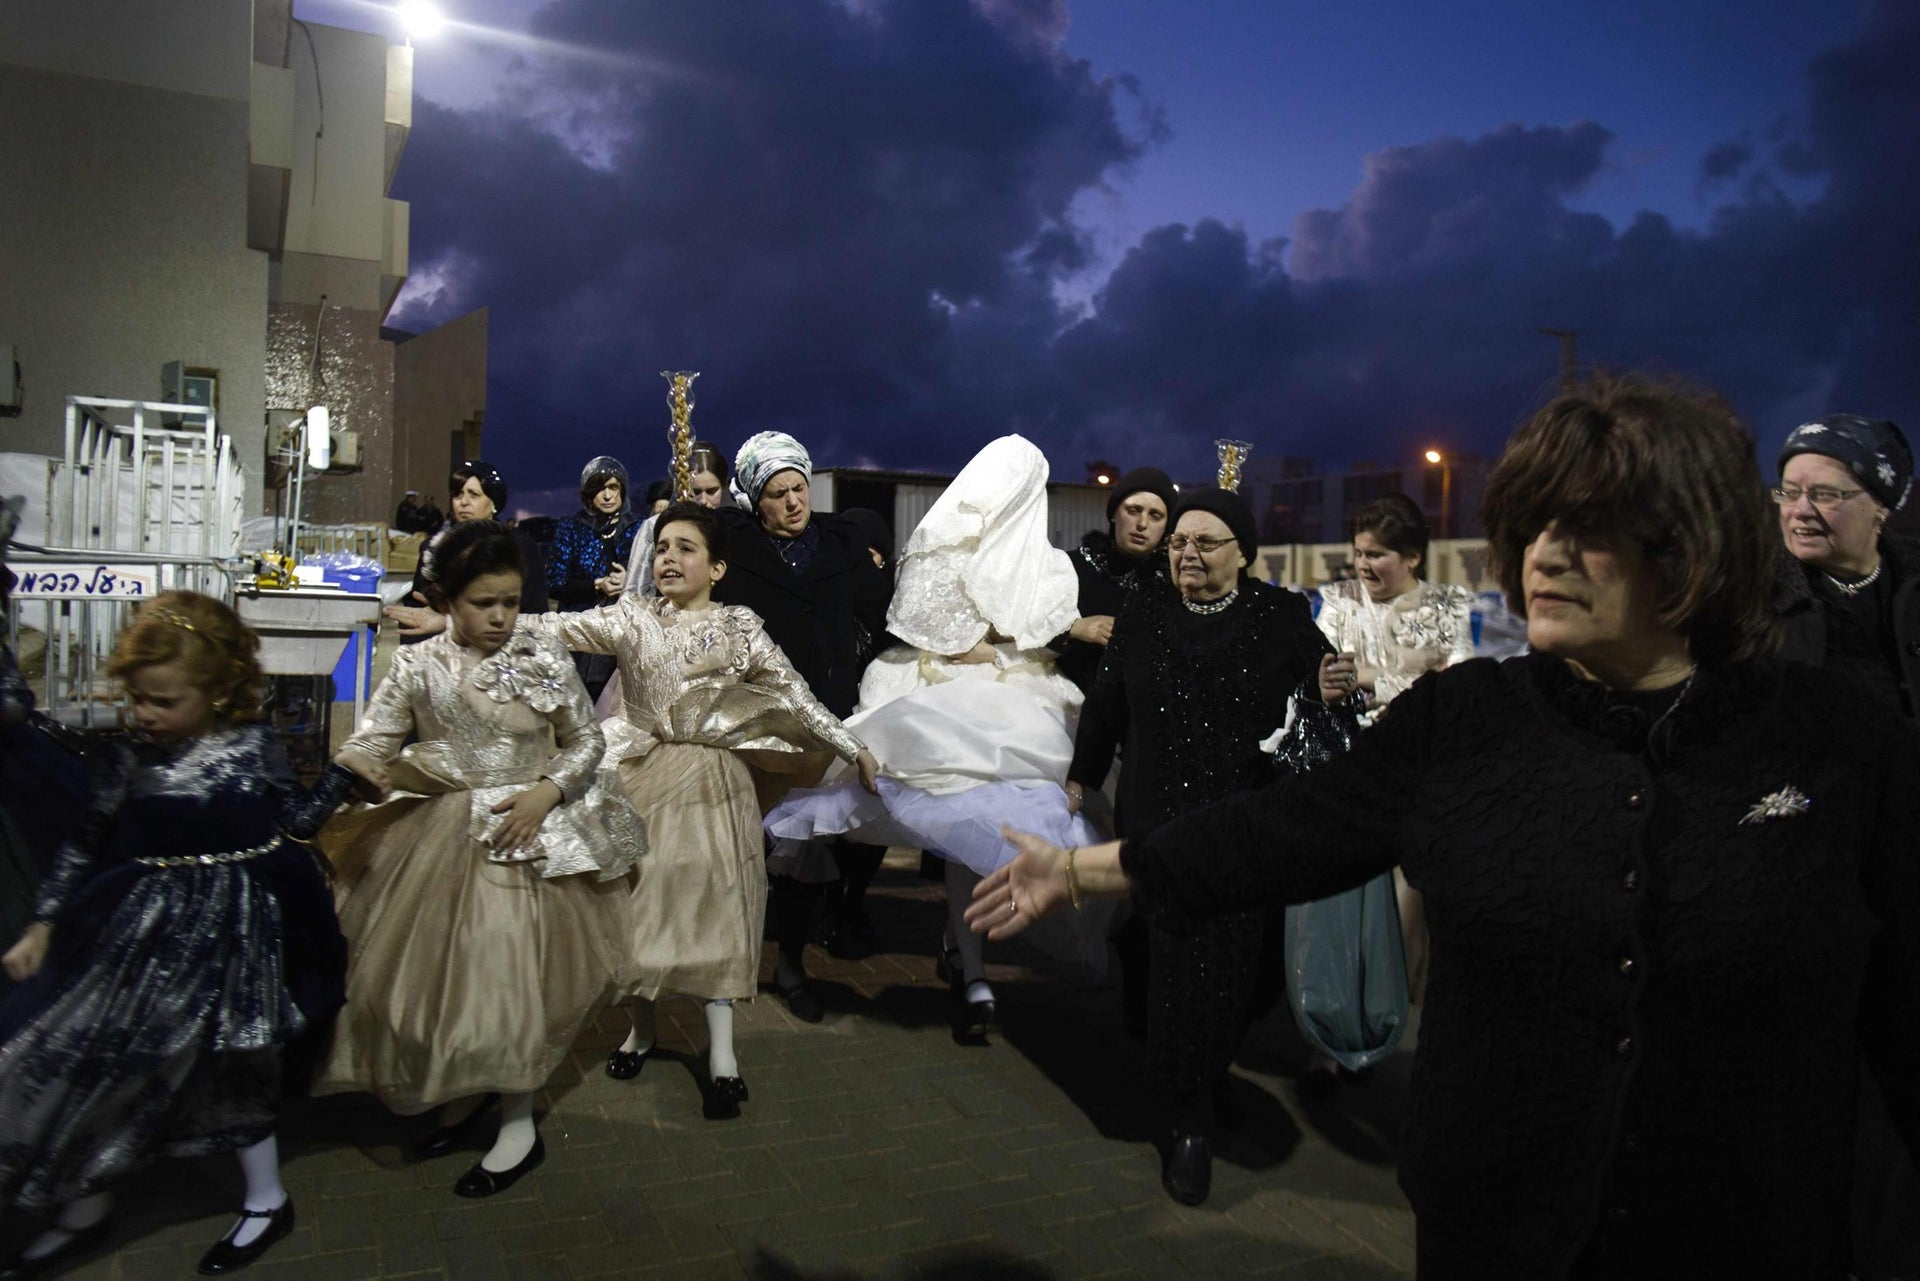 Family members lead Ultra-Orthodox Jewish bride Parowol Mirel Lamber, from the Toldos Avrohom Yitzchok (Hasidic dynasty), to marry the great-grandson of the Rabbi of the Tzanz Ultra-Orthodox Hasidic community at a wedding ceremony on March 15, 2016, in the Israeli central city of Netanya.